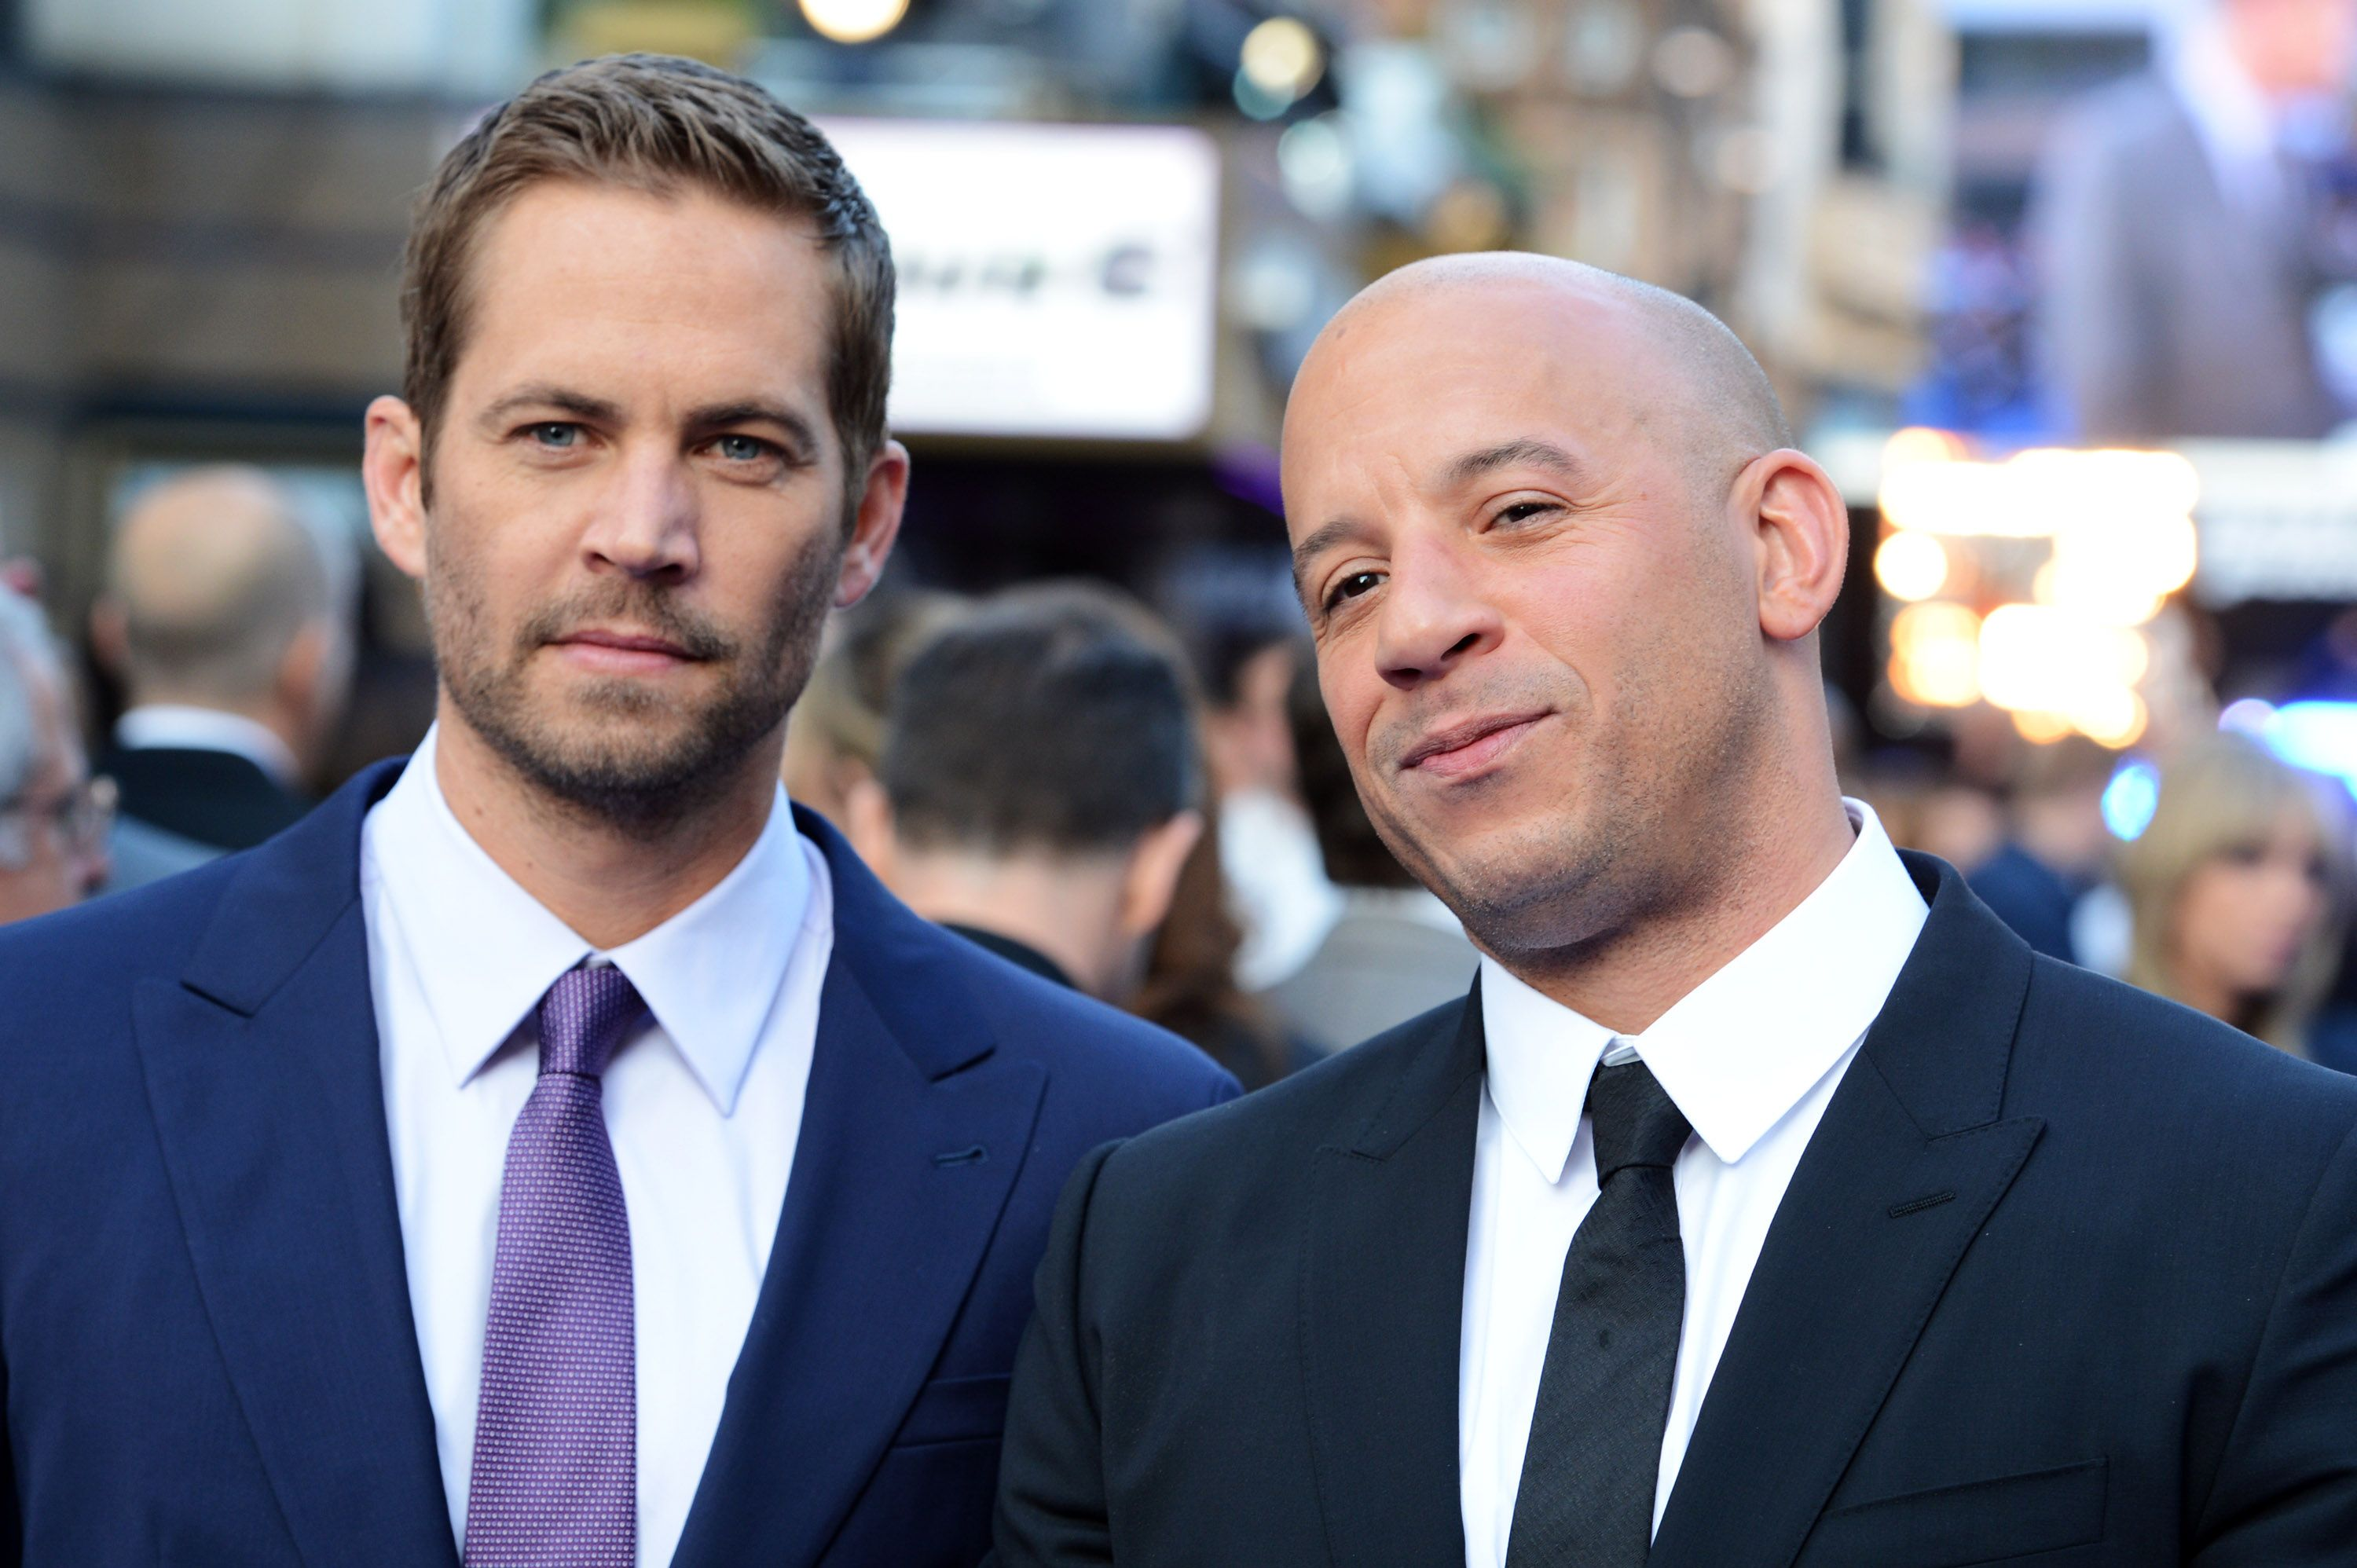 Paul Walker and Vin Diesel at the world premiere of 'Fast And Furious 6' at The Empire Leicester Square on May 7, 2013 | Photo: Getty Images